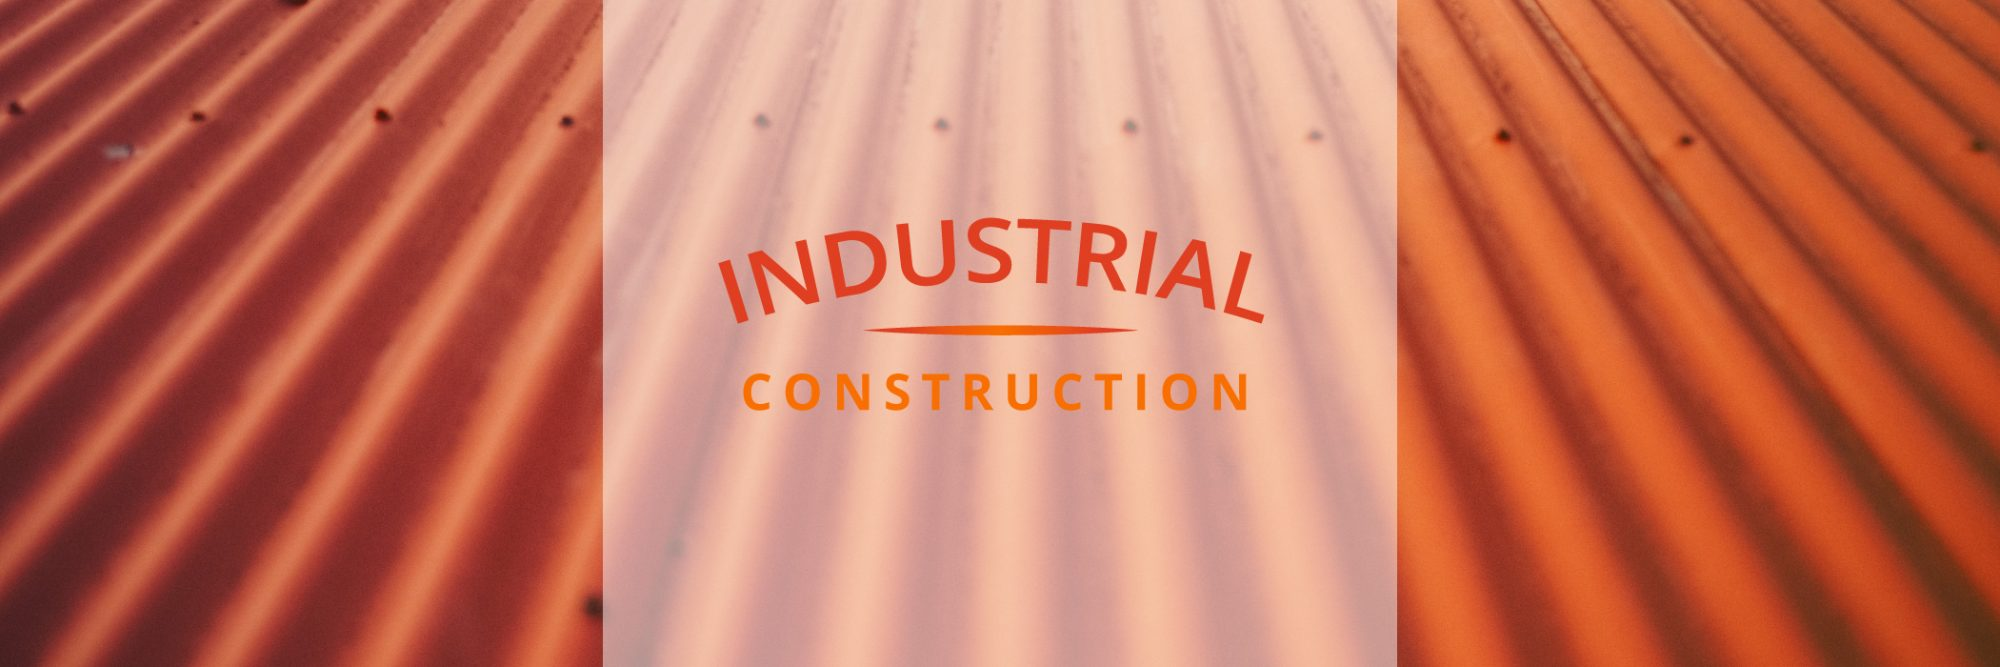 Grand Rapids Michigan Industrial Construction